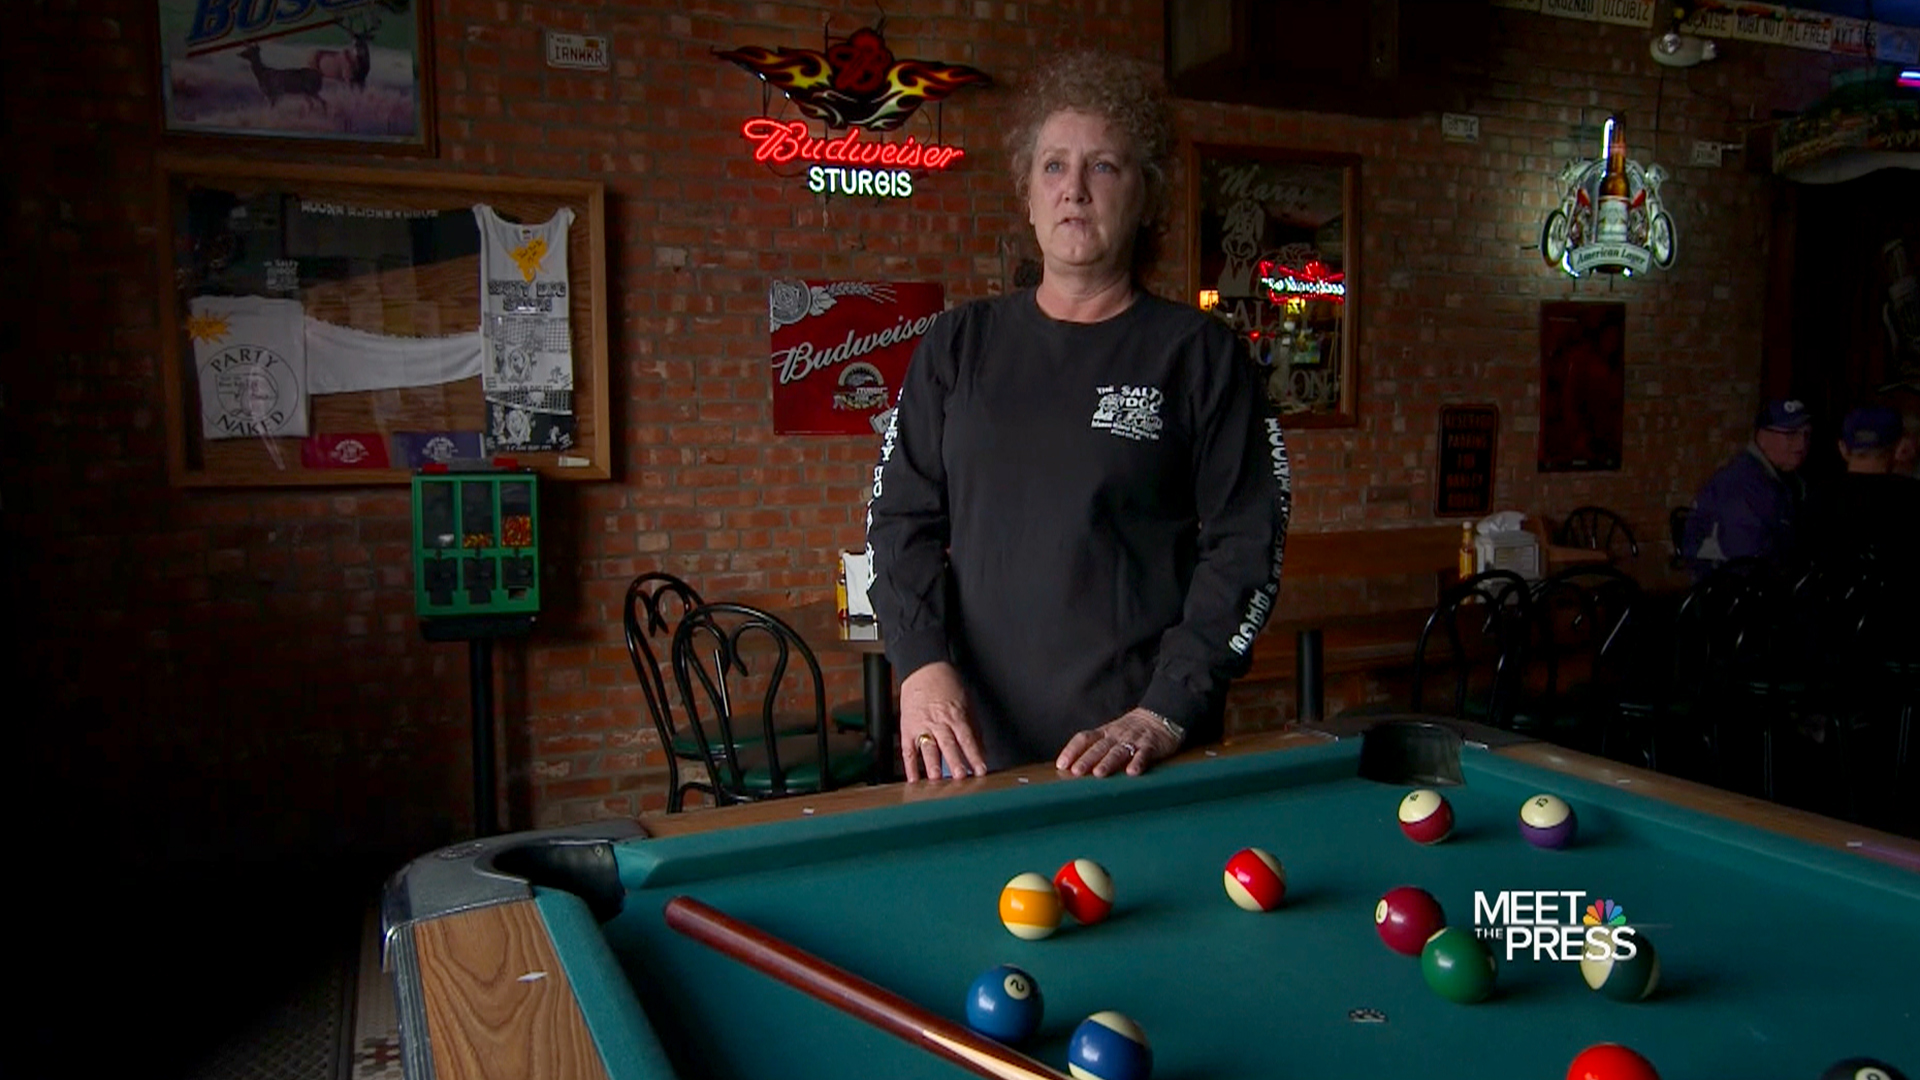 Meeting America: Keystone a Big Issue Dividing a Small Town